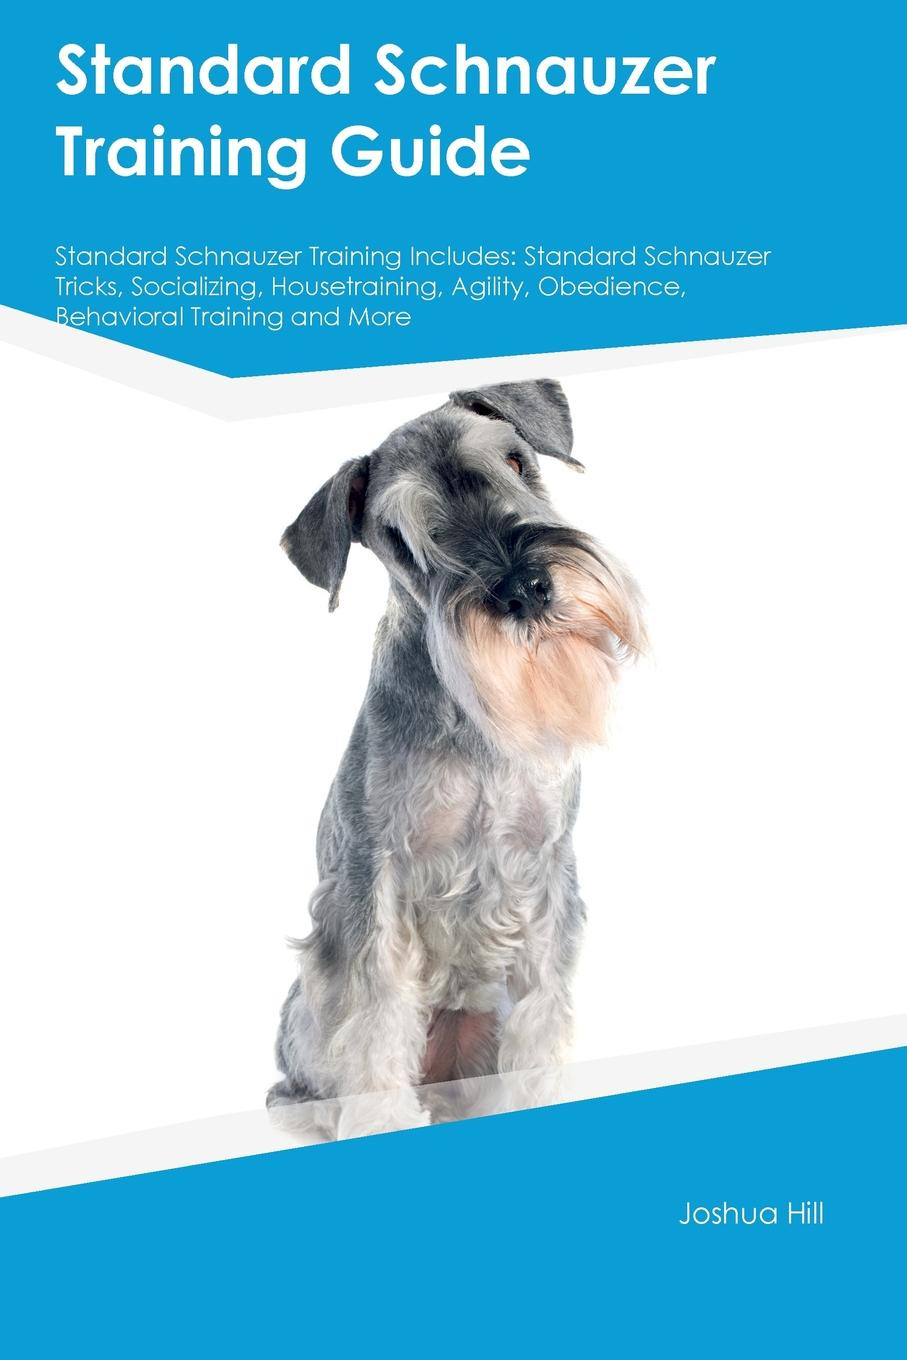 Matt Bell Standard Schnauzer Training Guide Includes. Tricks, Socializing, Housetraining, Agility, Obedience, Behavioral and More